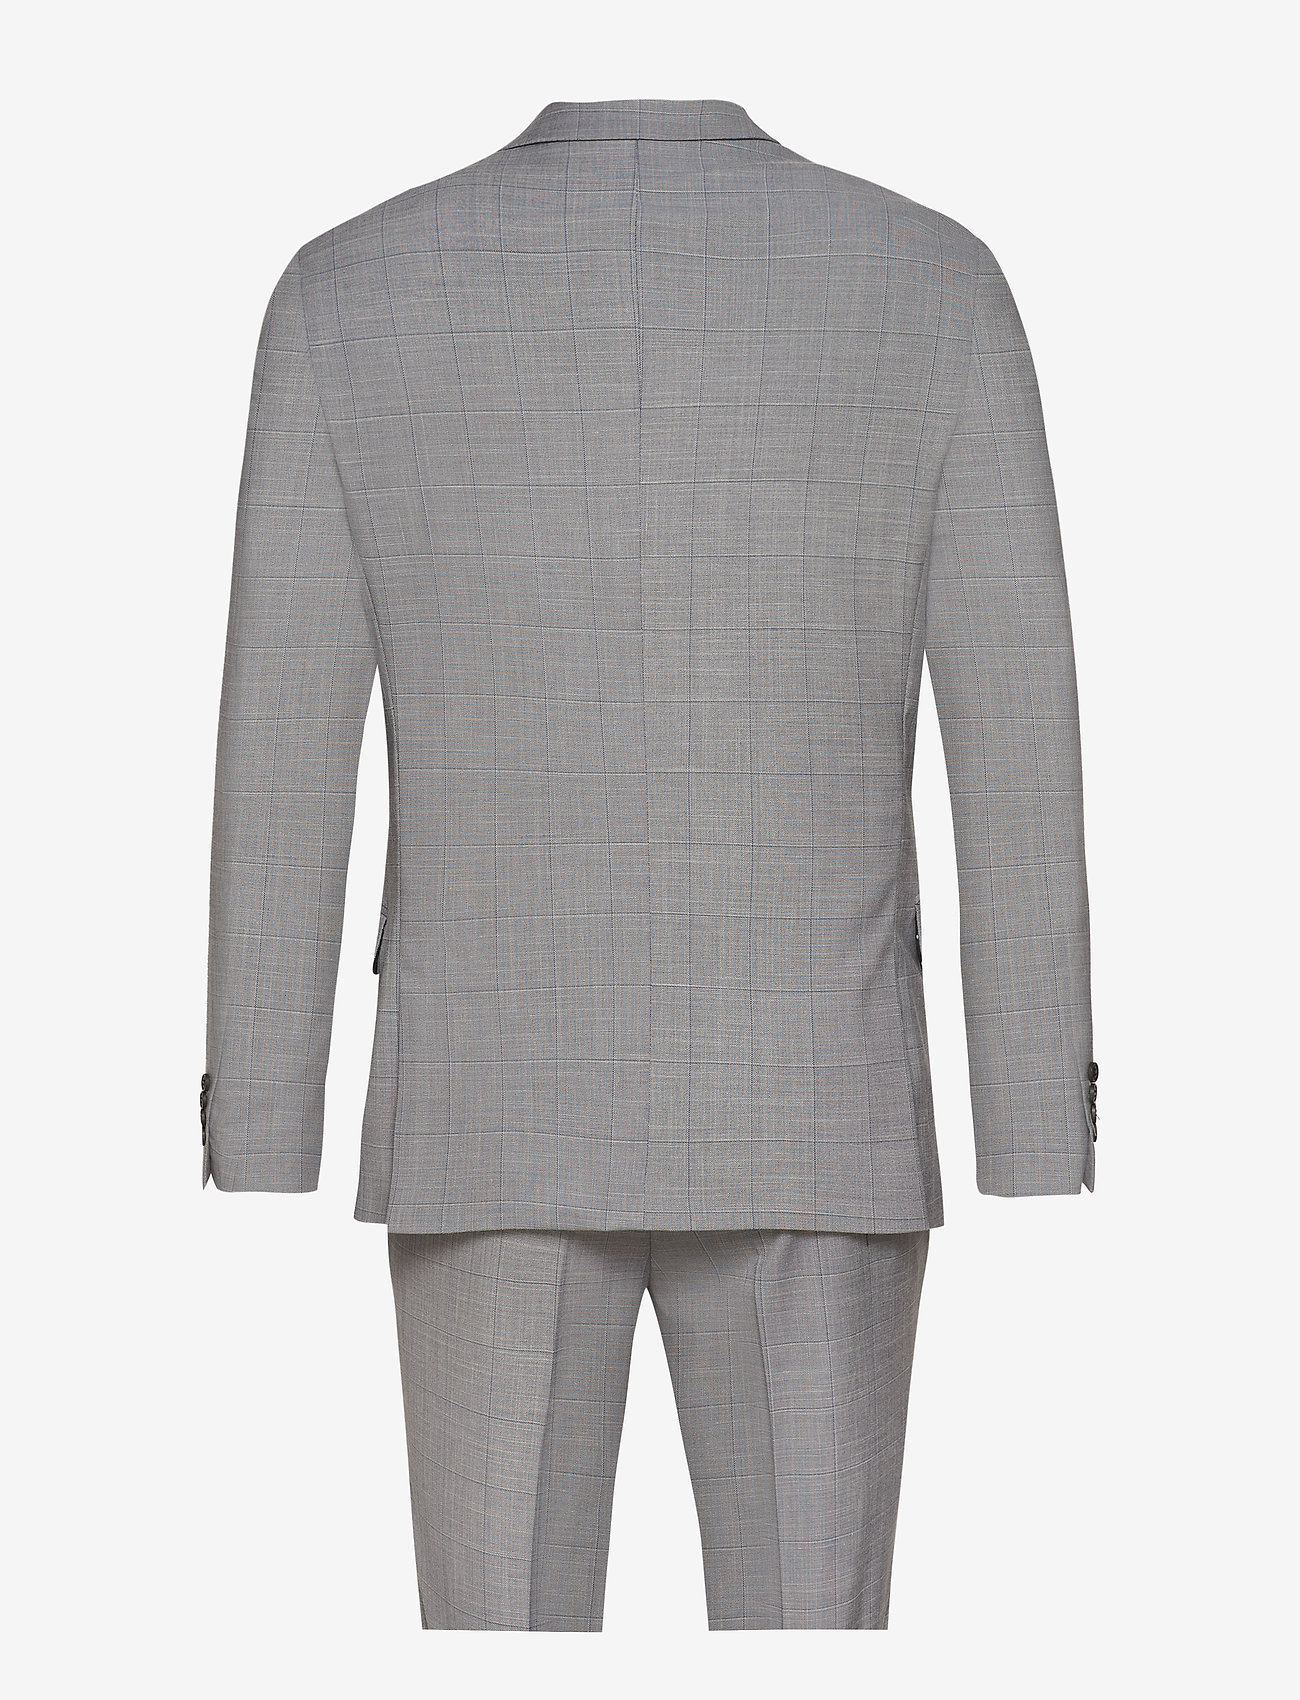 Checked Suit (Lt Grey Check) - Lindbergh zYIO5L